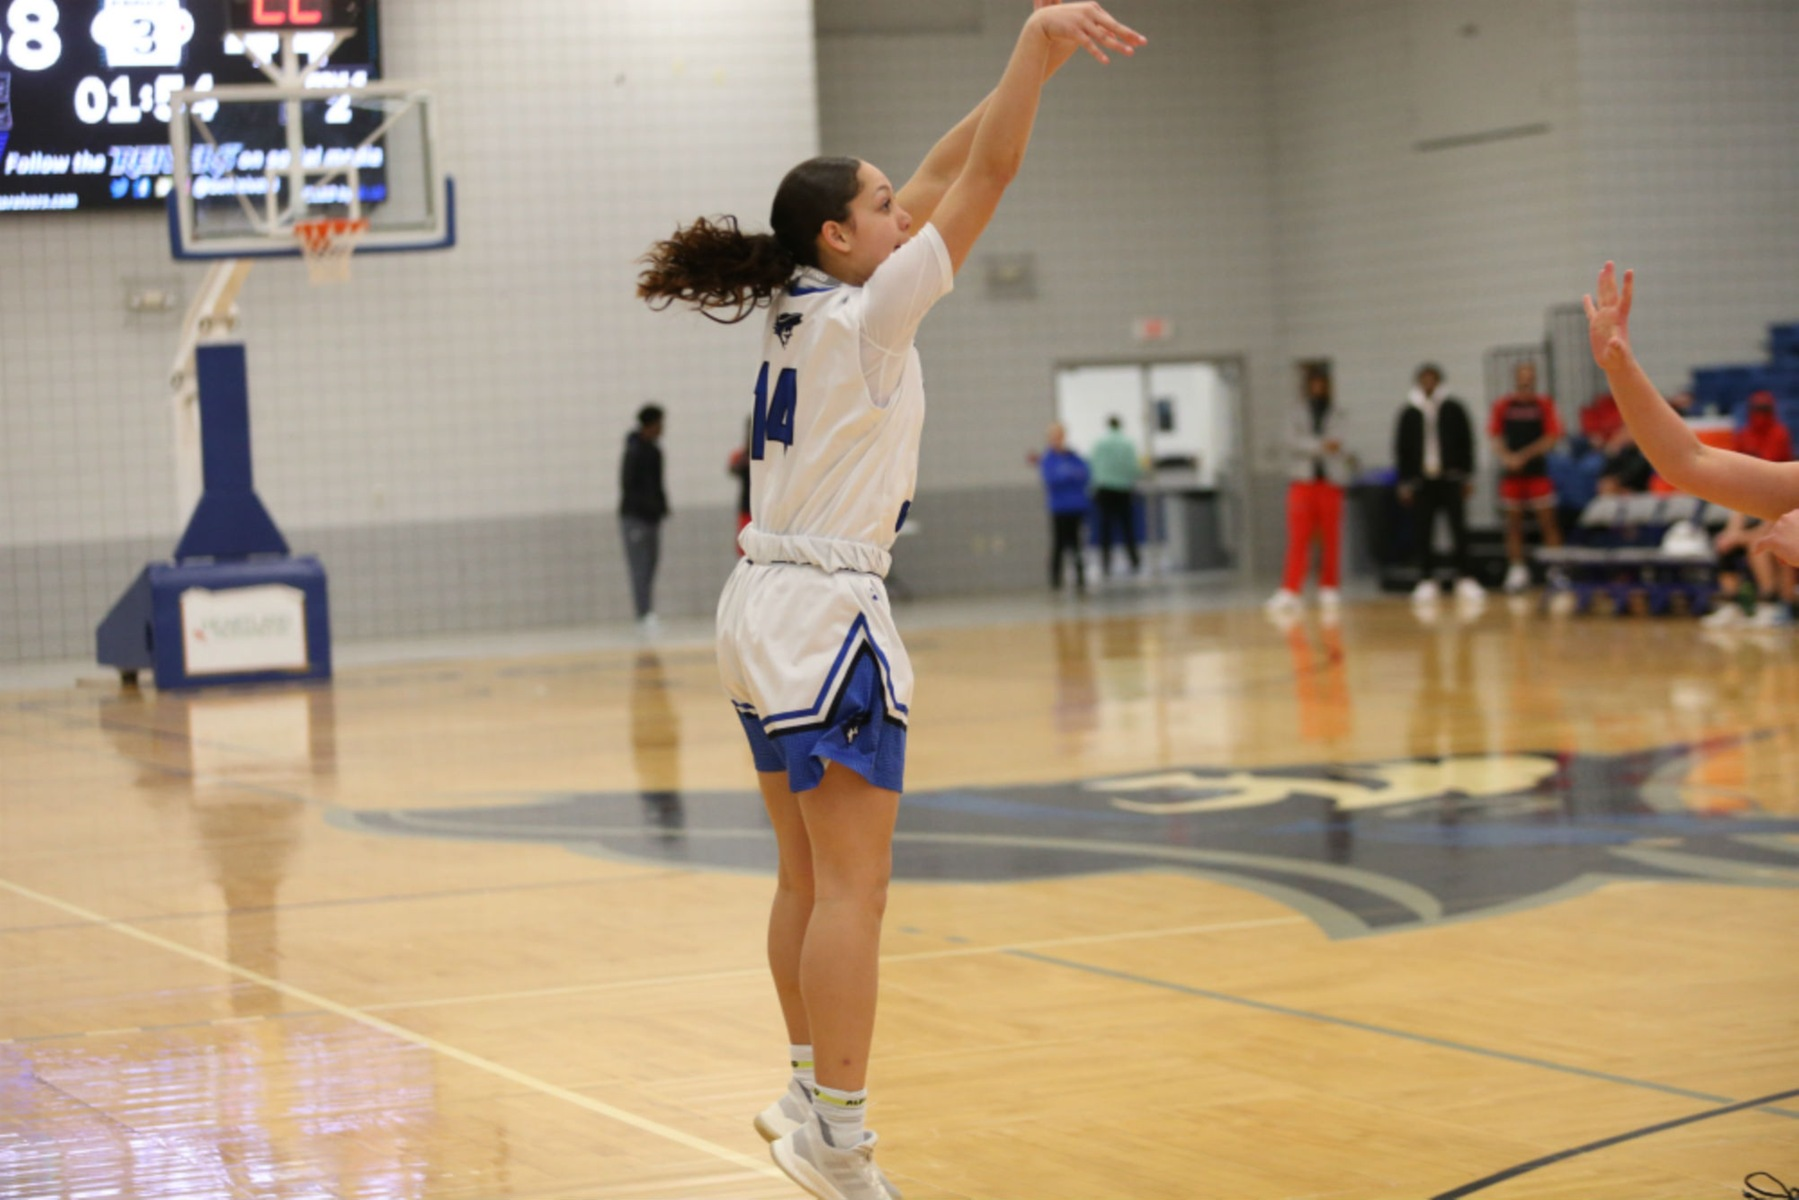 Winning streak continues for Reiver Women